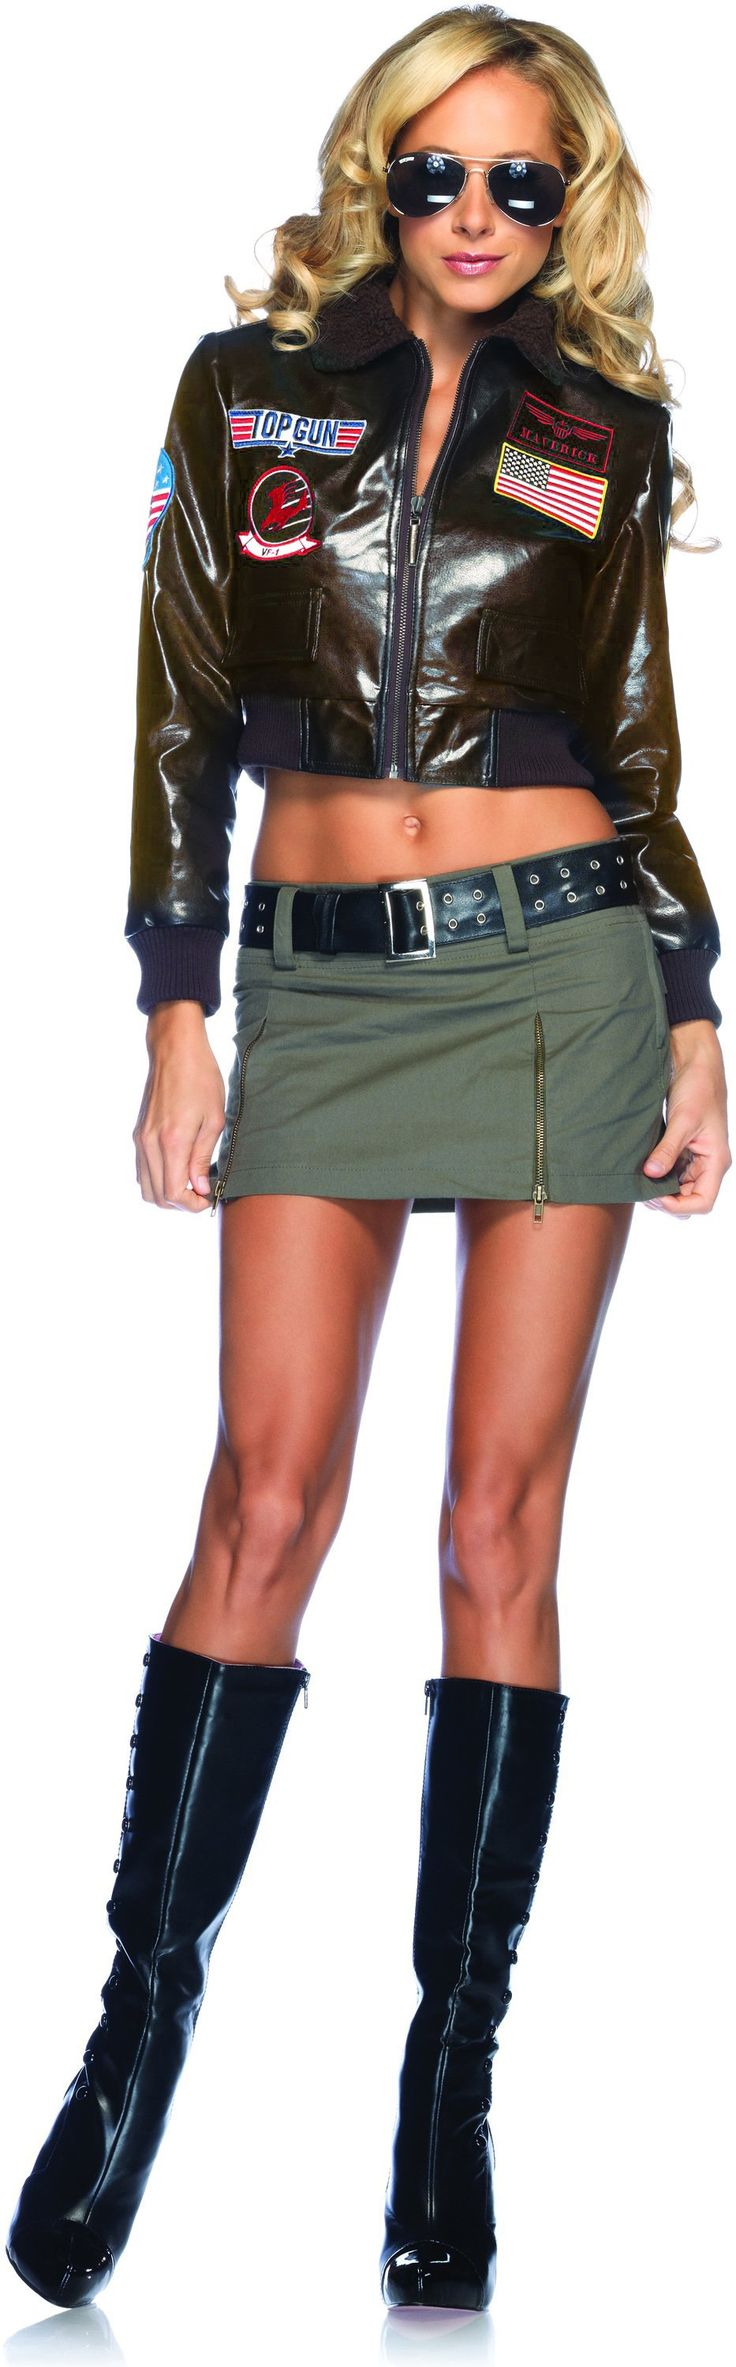 New arrivals of costumes coming this week! Pilots and flight attendants, and TOP GUN! teezerscostumes.com